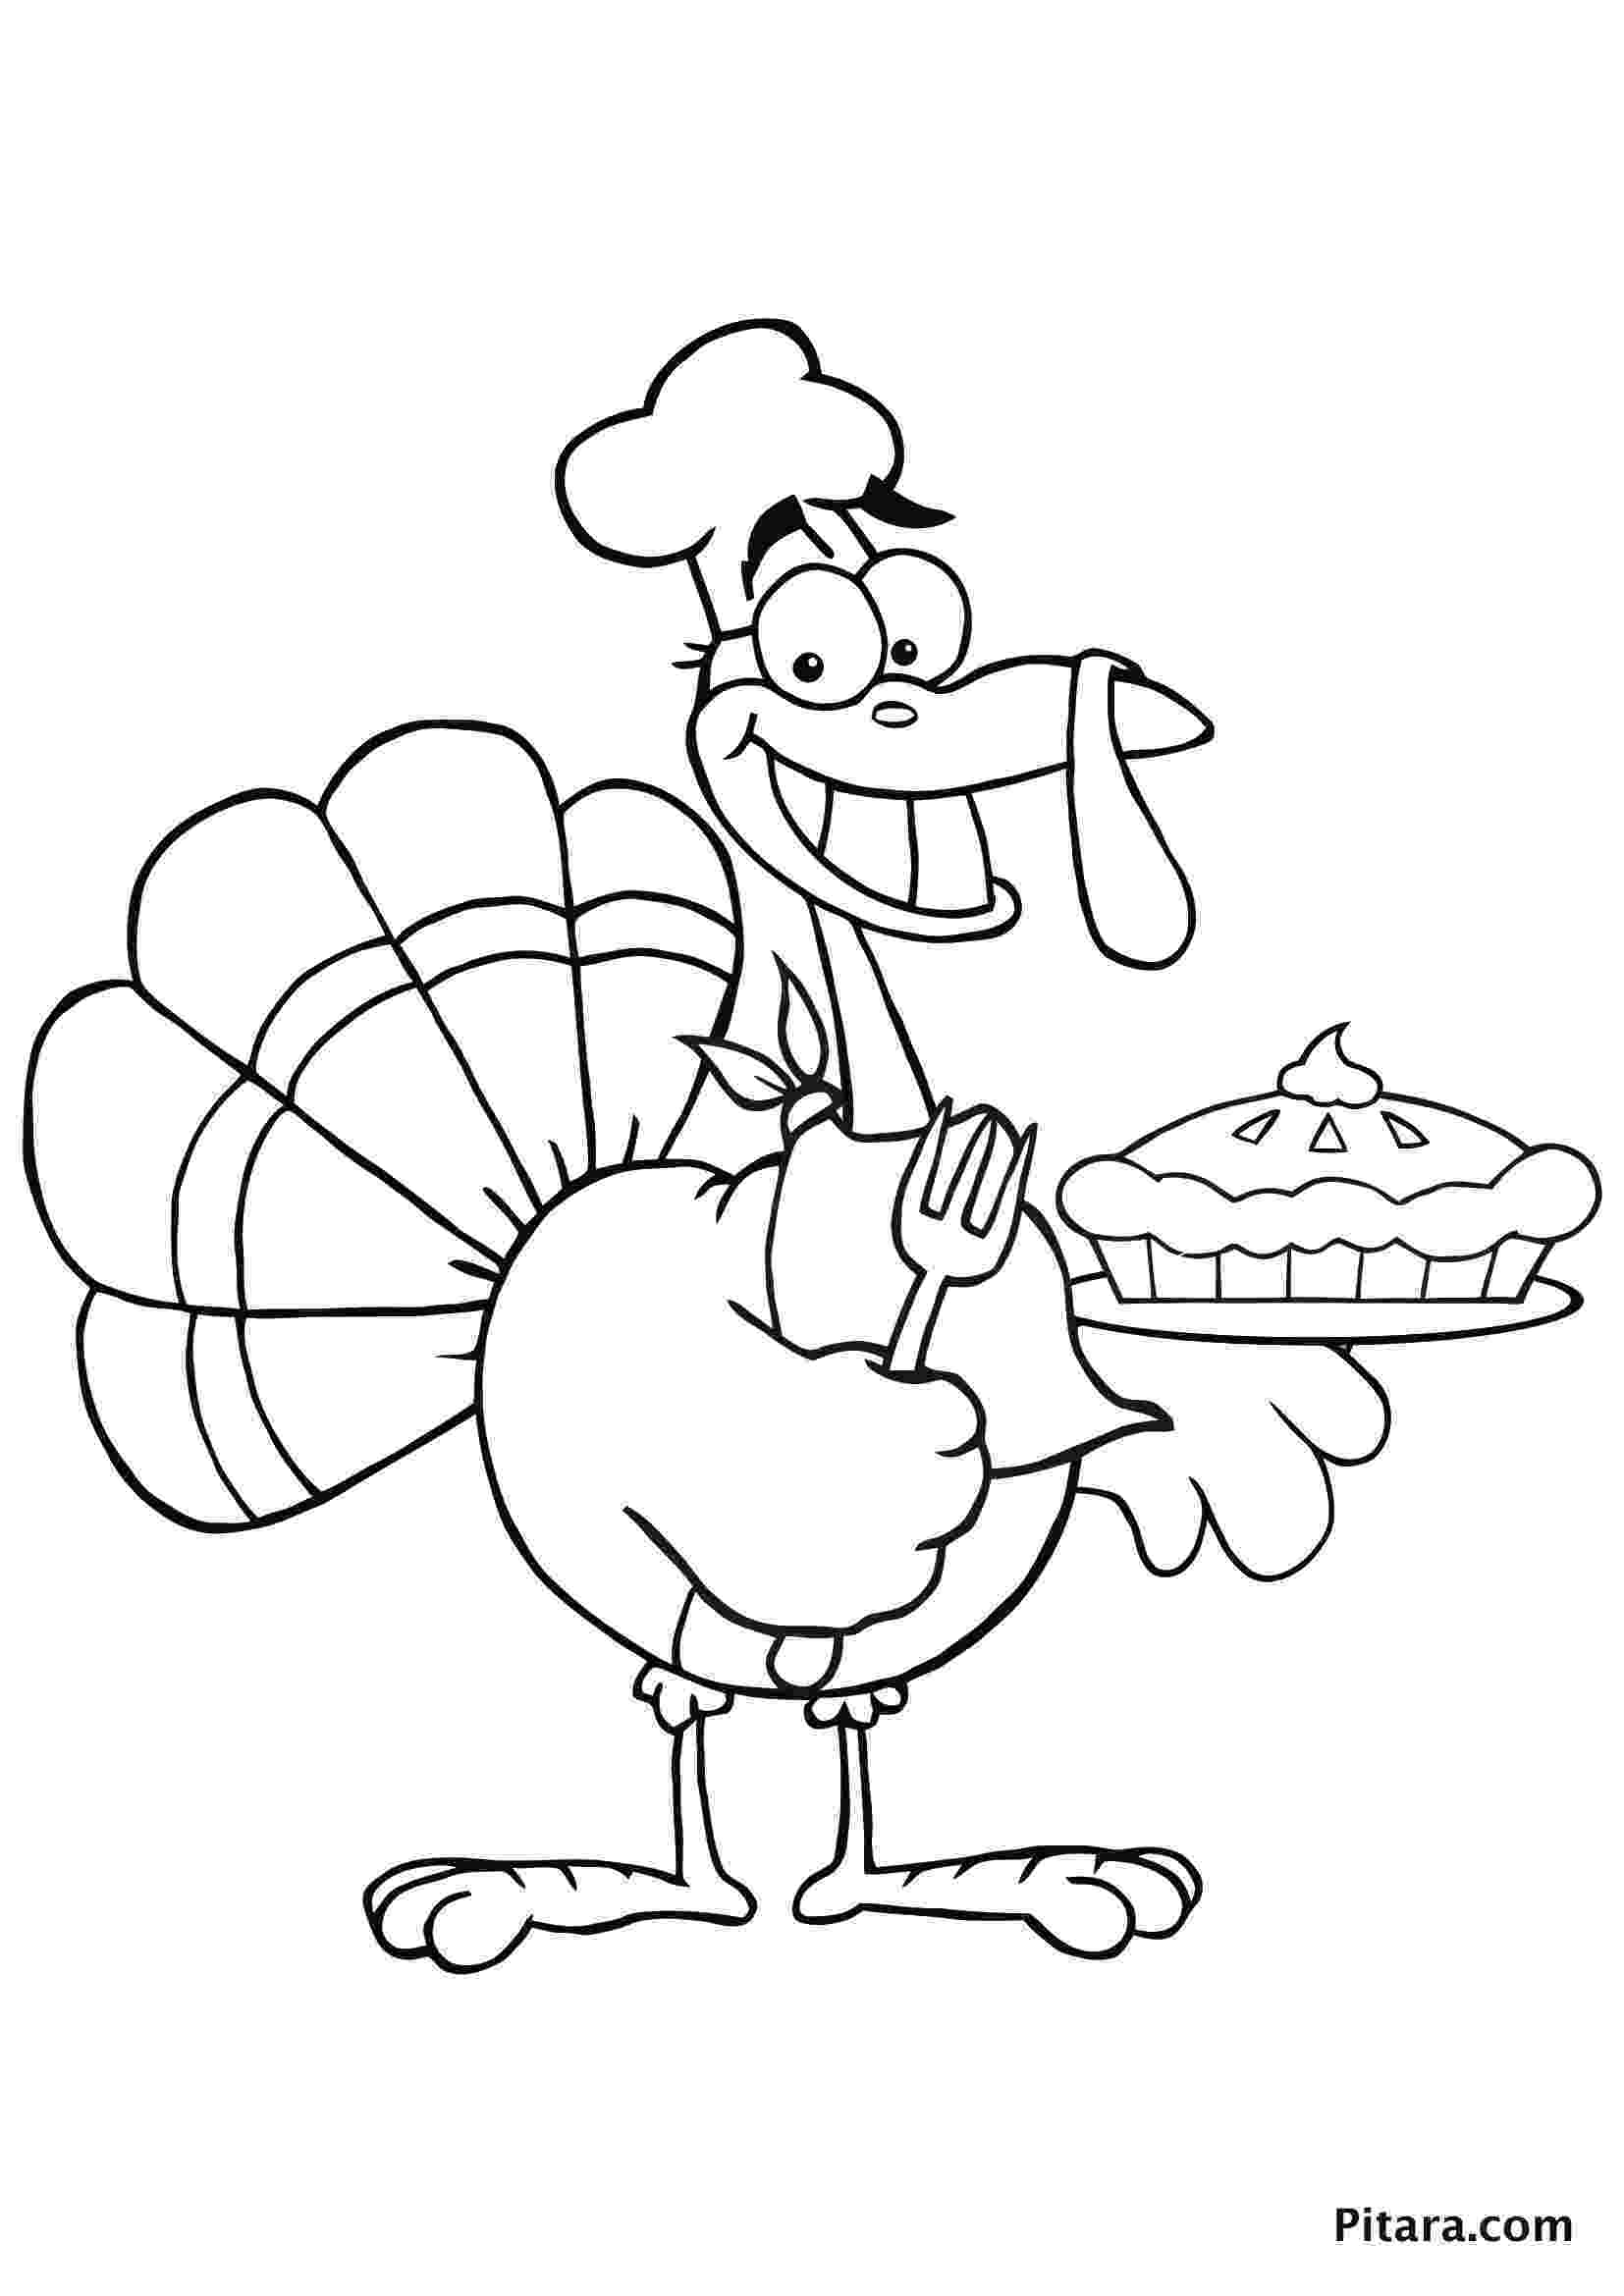 turkey coloring turkey coloring pages to download and print for free turkey coloring